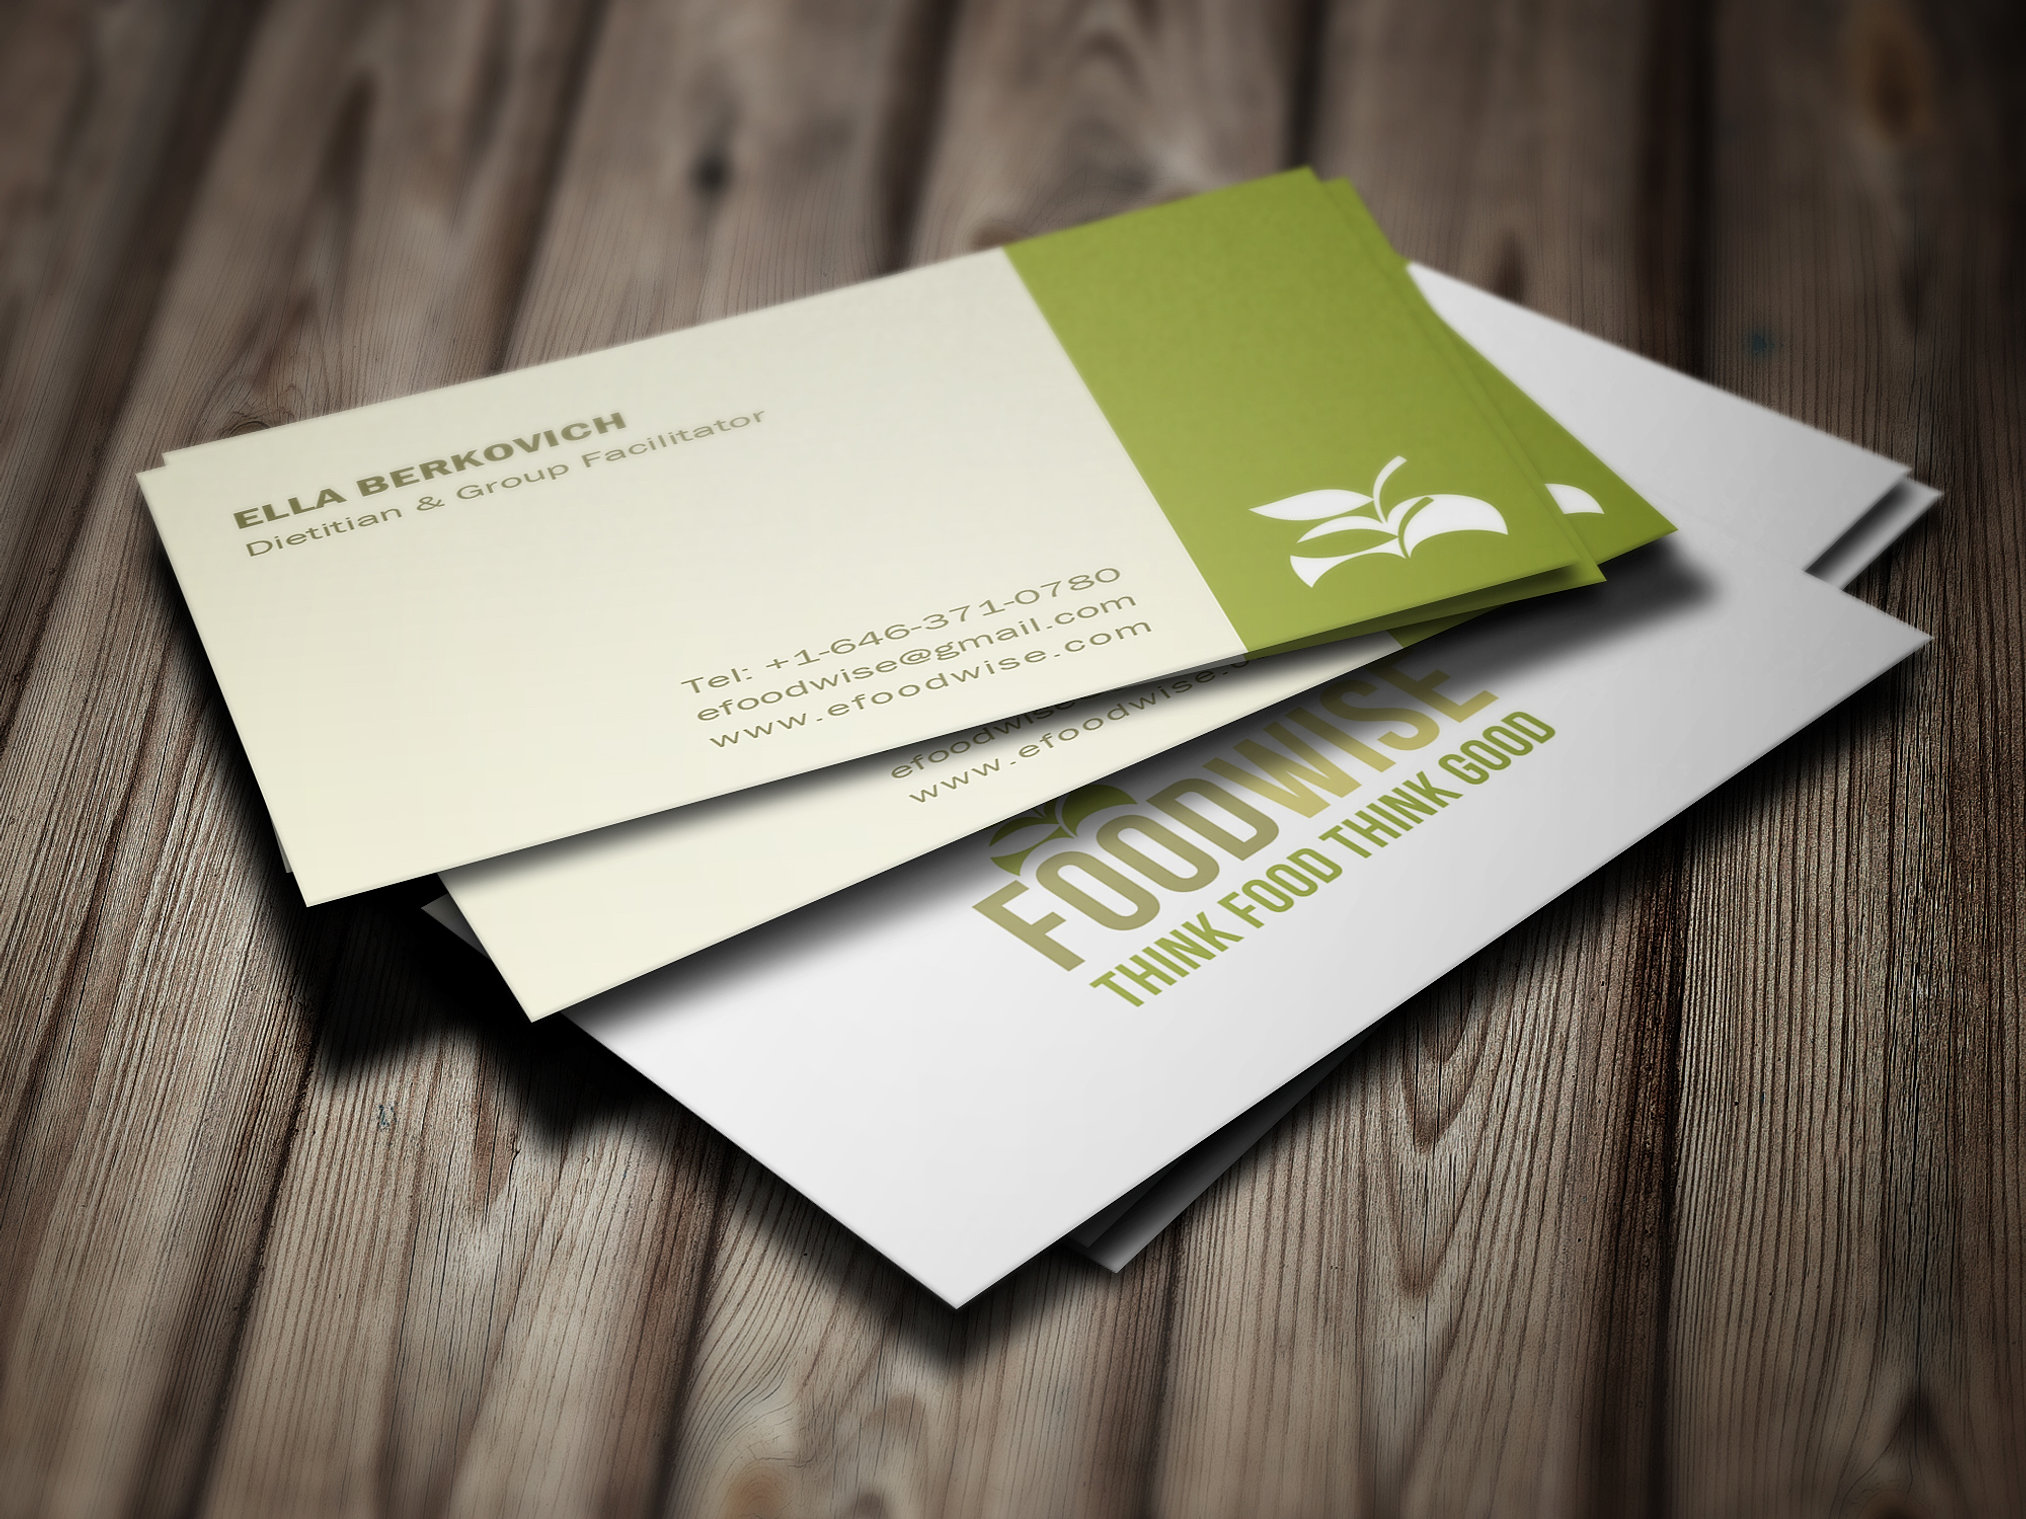 magic productions business card design